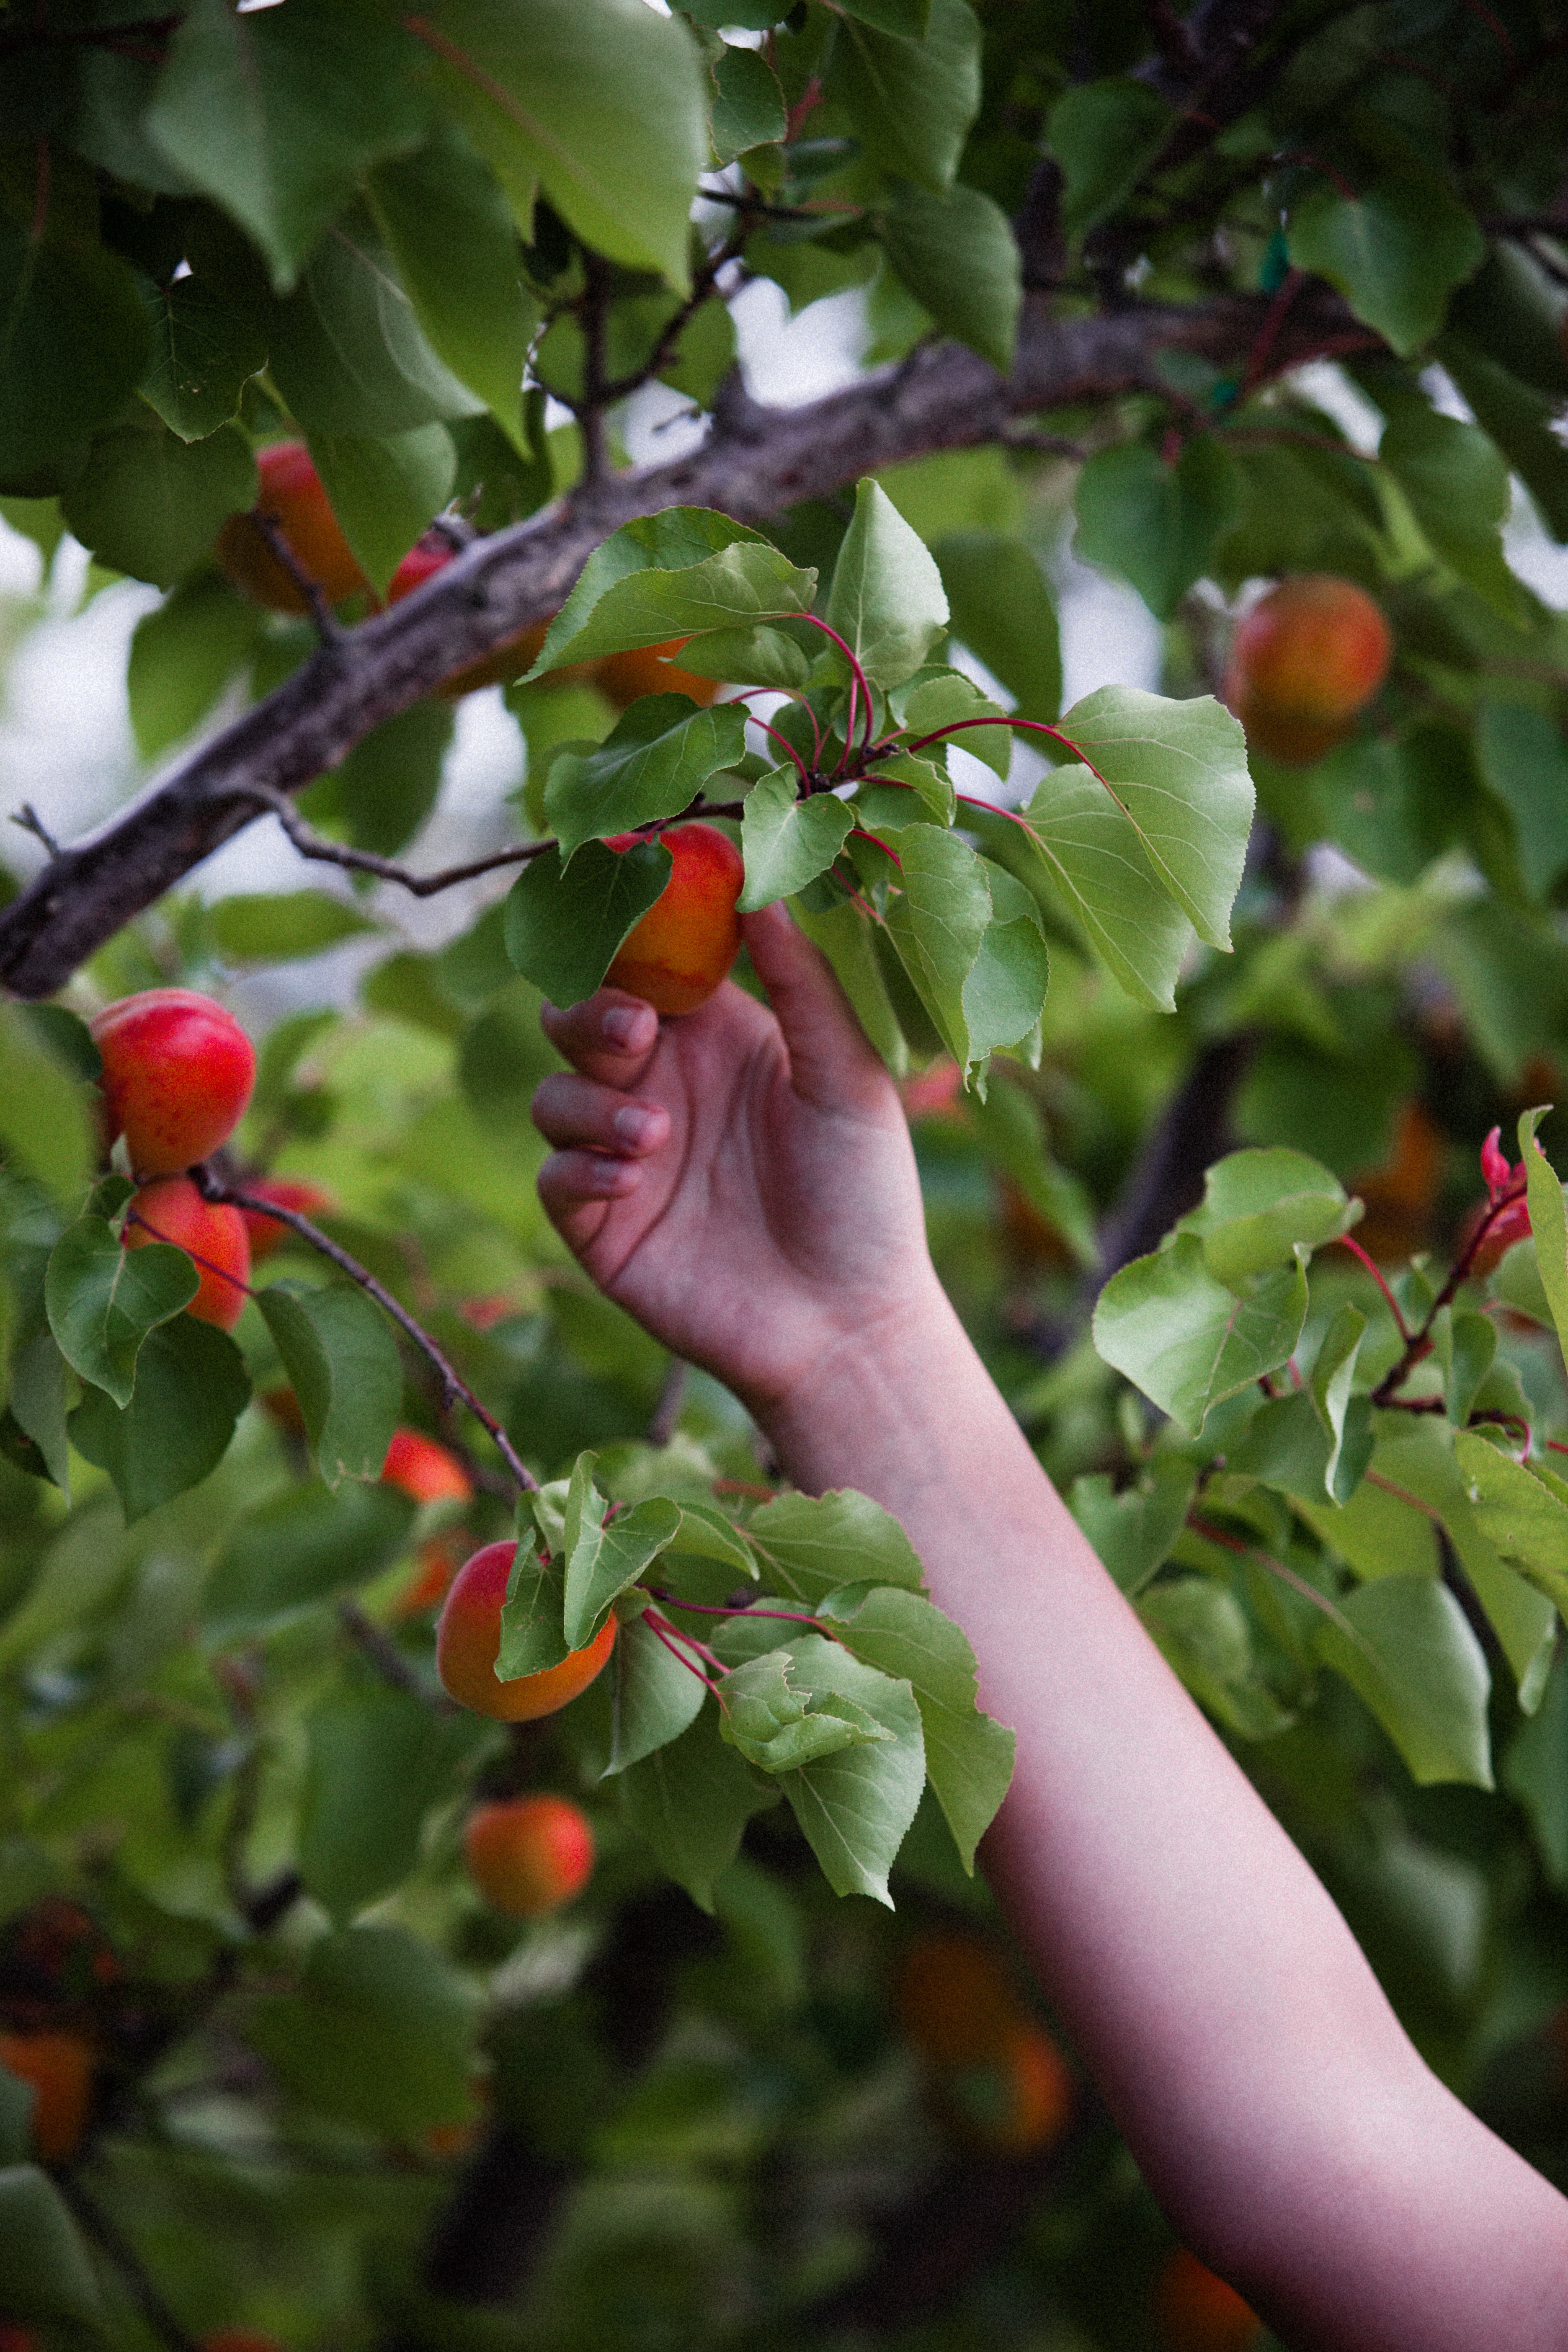 person picking red fruits